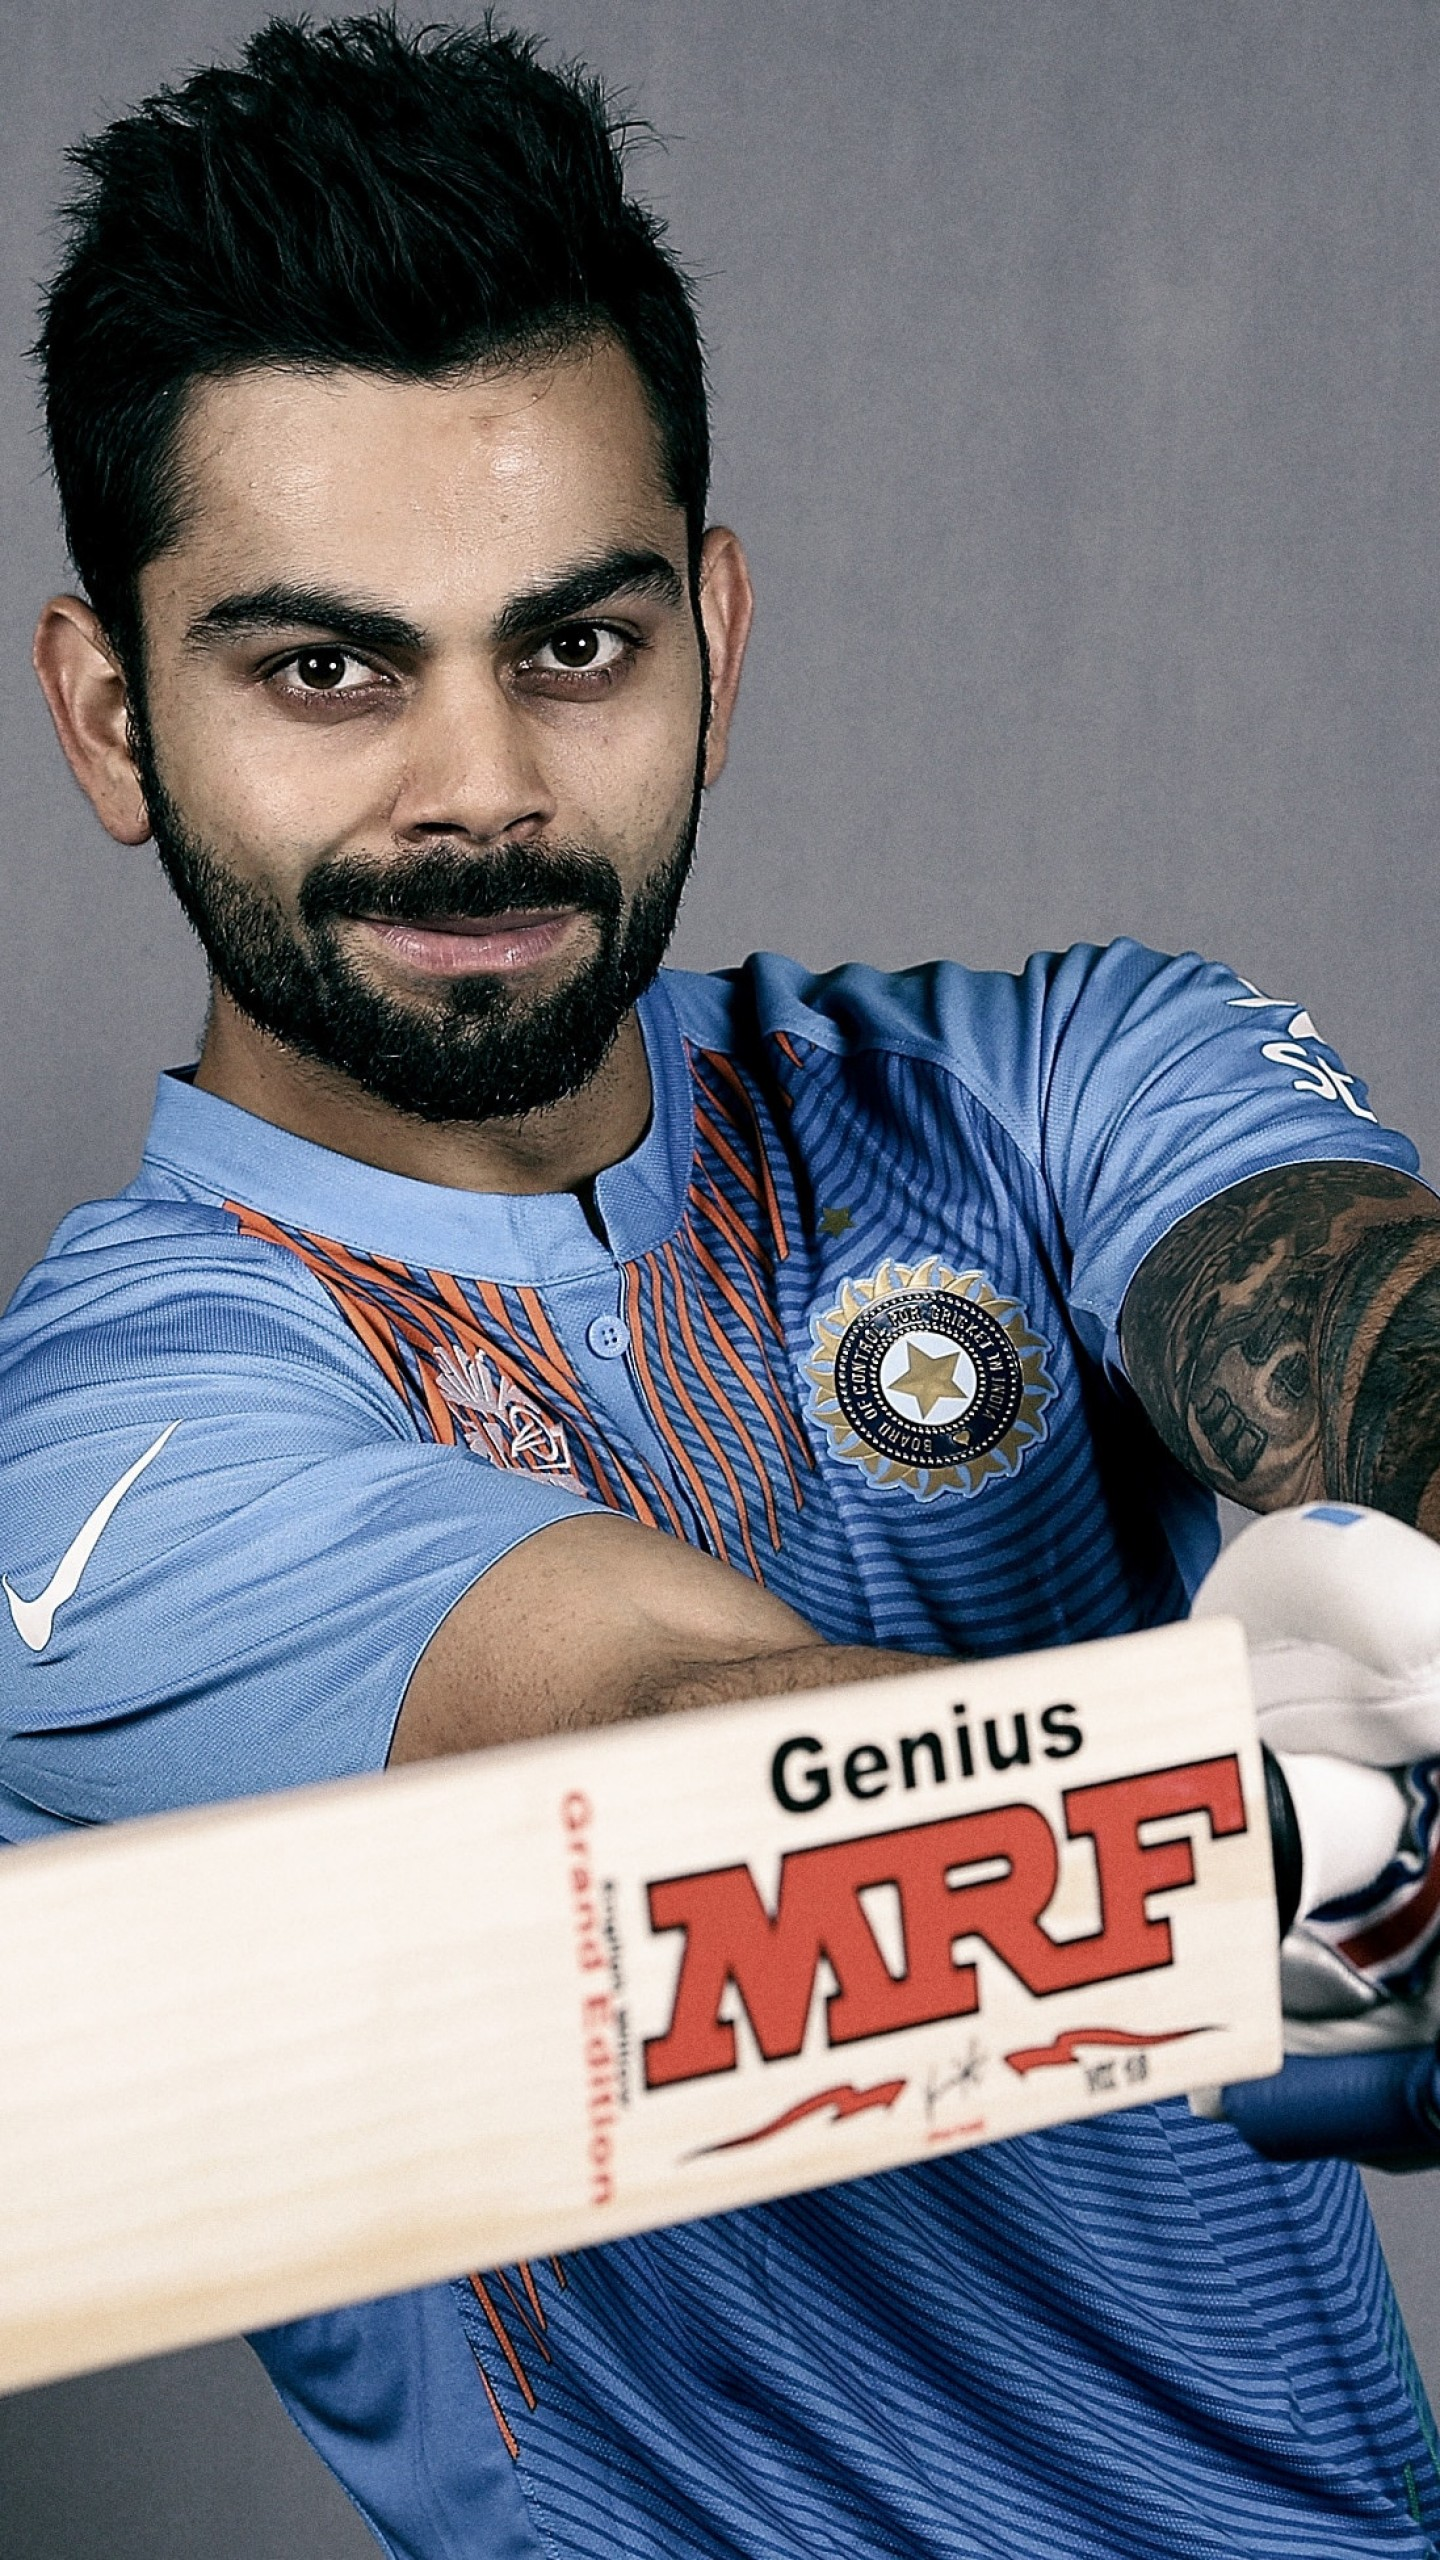 Virat Kohli Wallpaper Posted By Michelle Sellers That virat kohli's imprint on indian cricket is immense is signalled by the fact that he has ushered in a cultural change. virat kohli wallpaper posted by